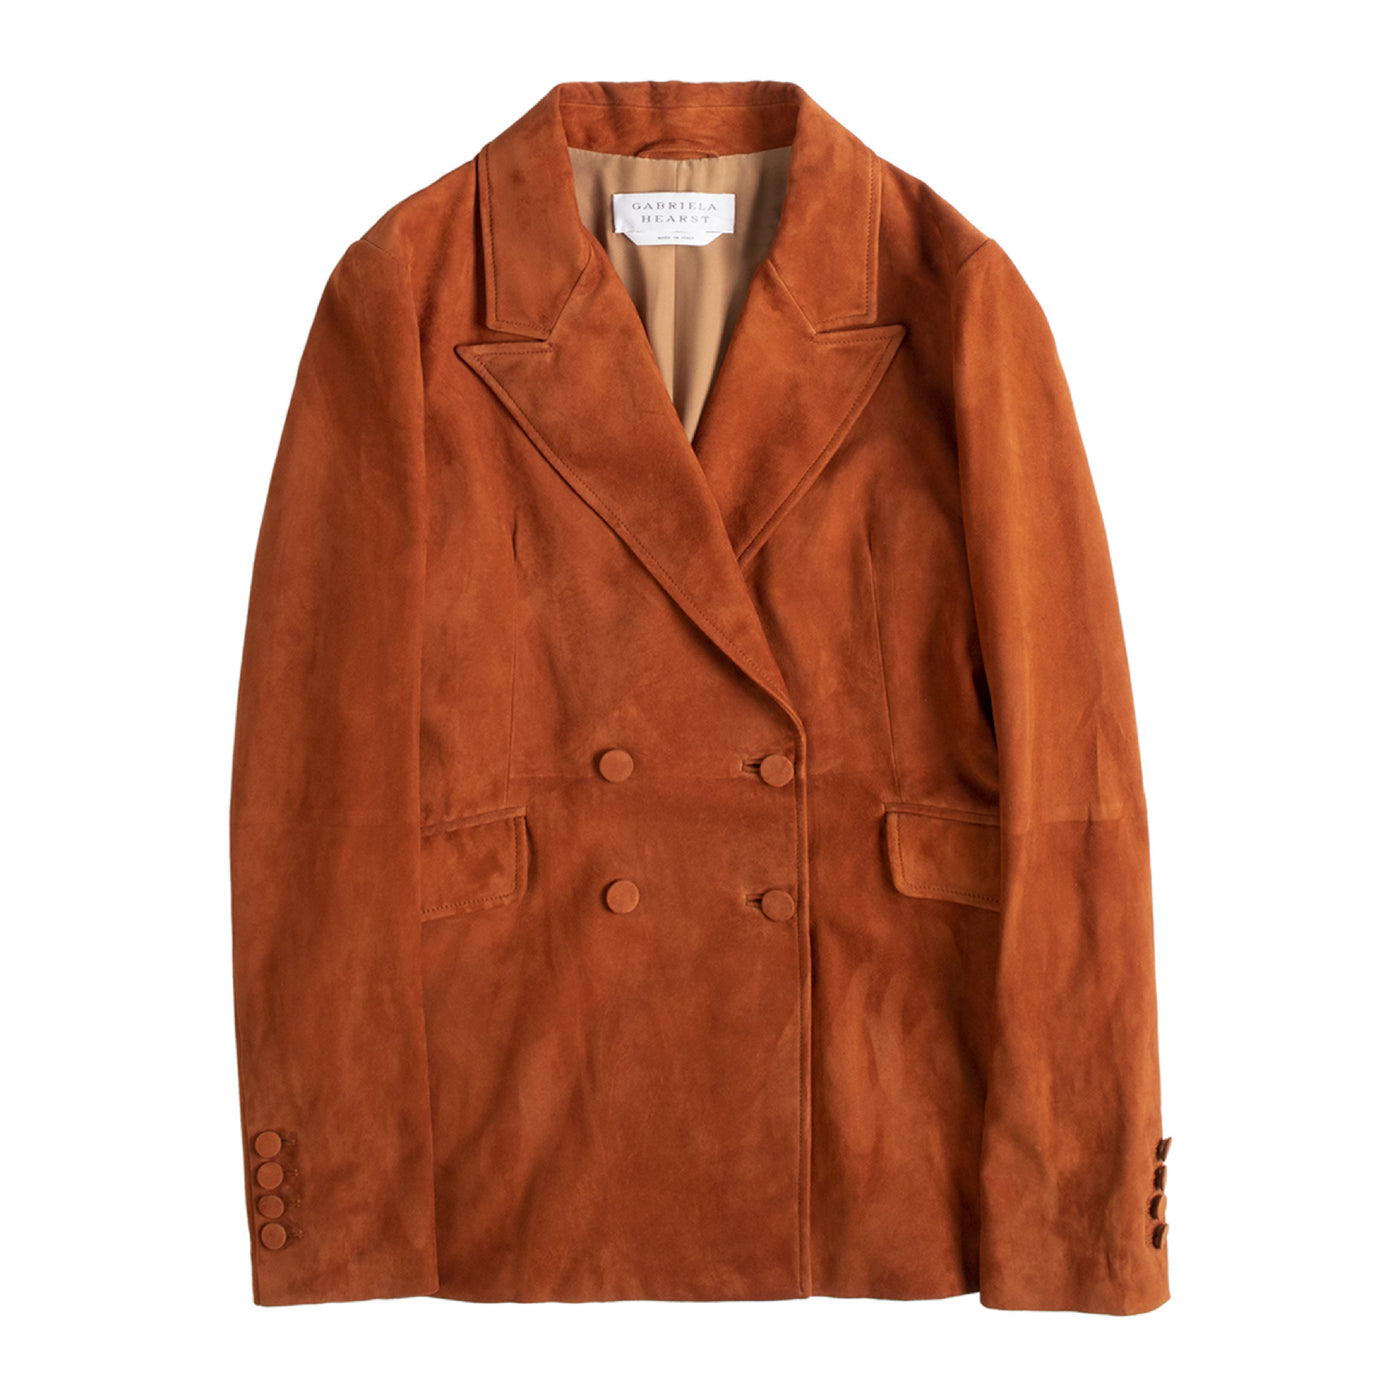 Load image into Gallery viewer, GABRIELA HEARST SUEDE BLAZER ORANGE